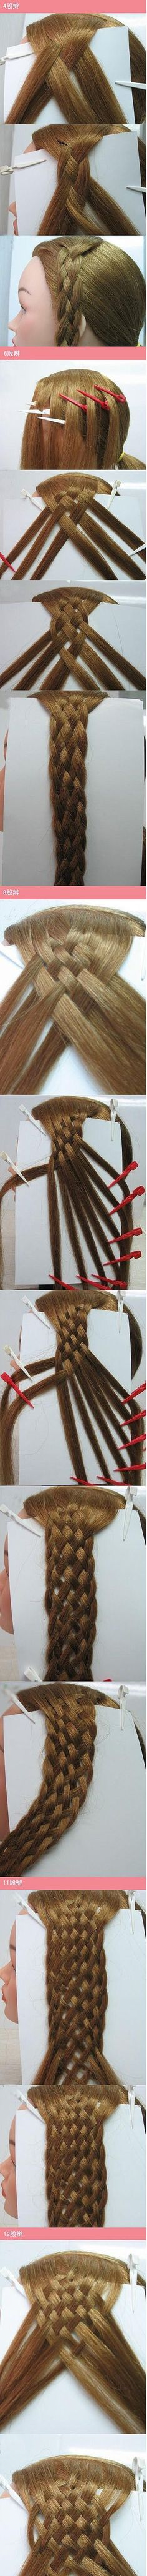 Different types of braids.